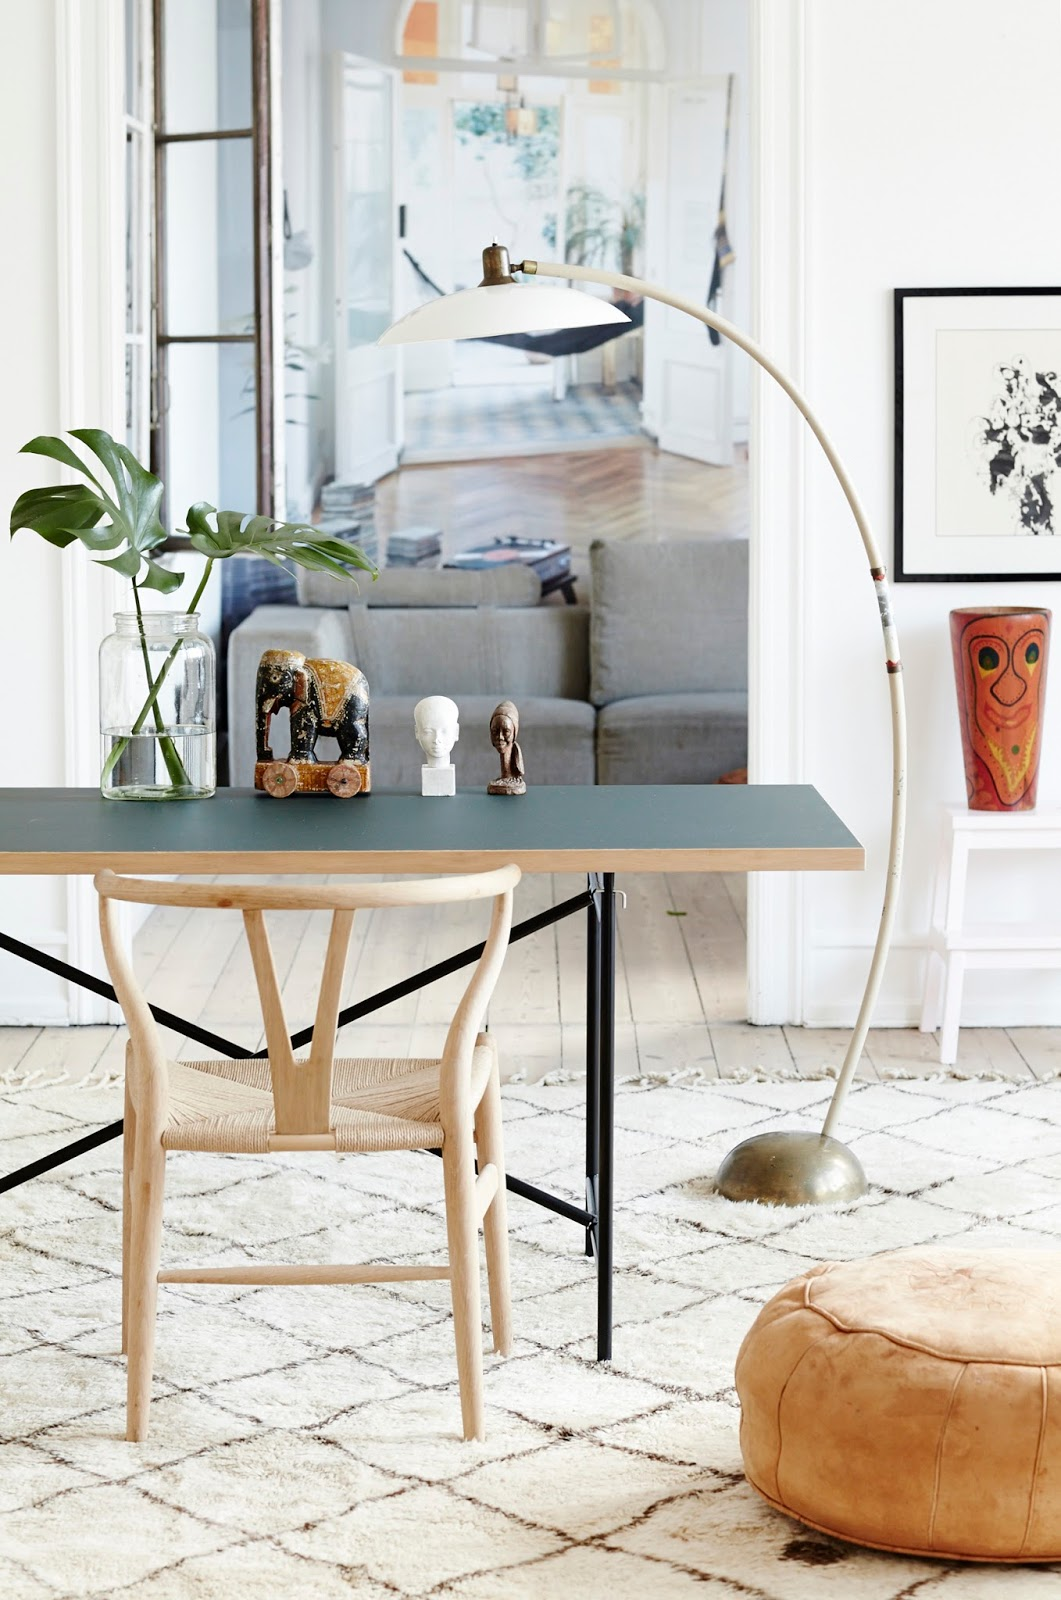 bohemian scandinavian apartment with moroccan rugs, wall art and design furniture , dining table, wishbone chair, monstera plant